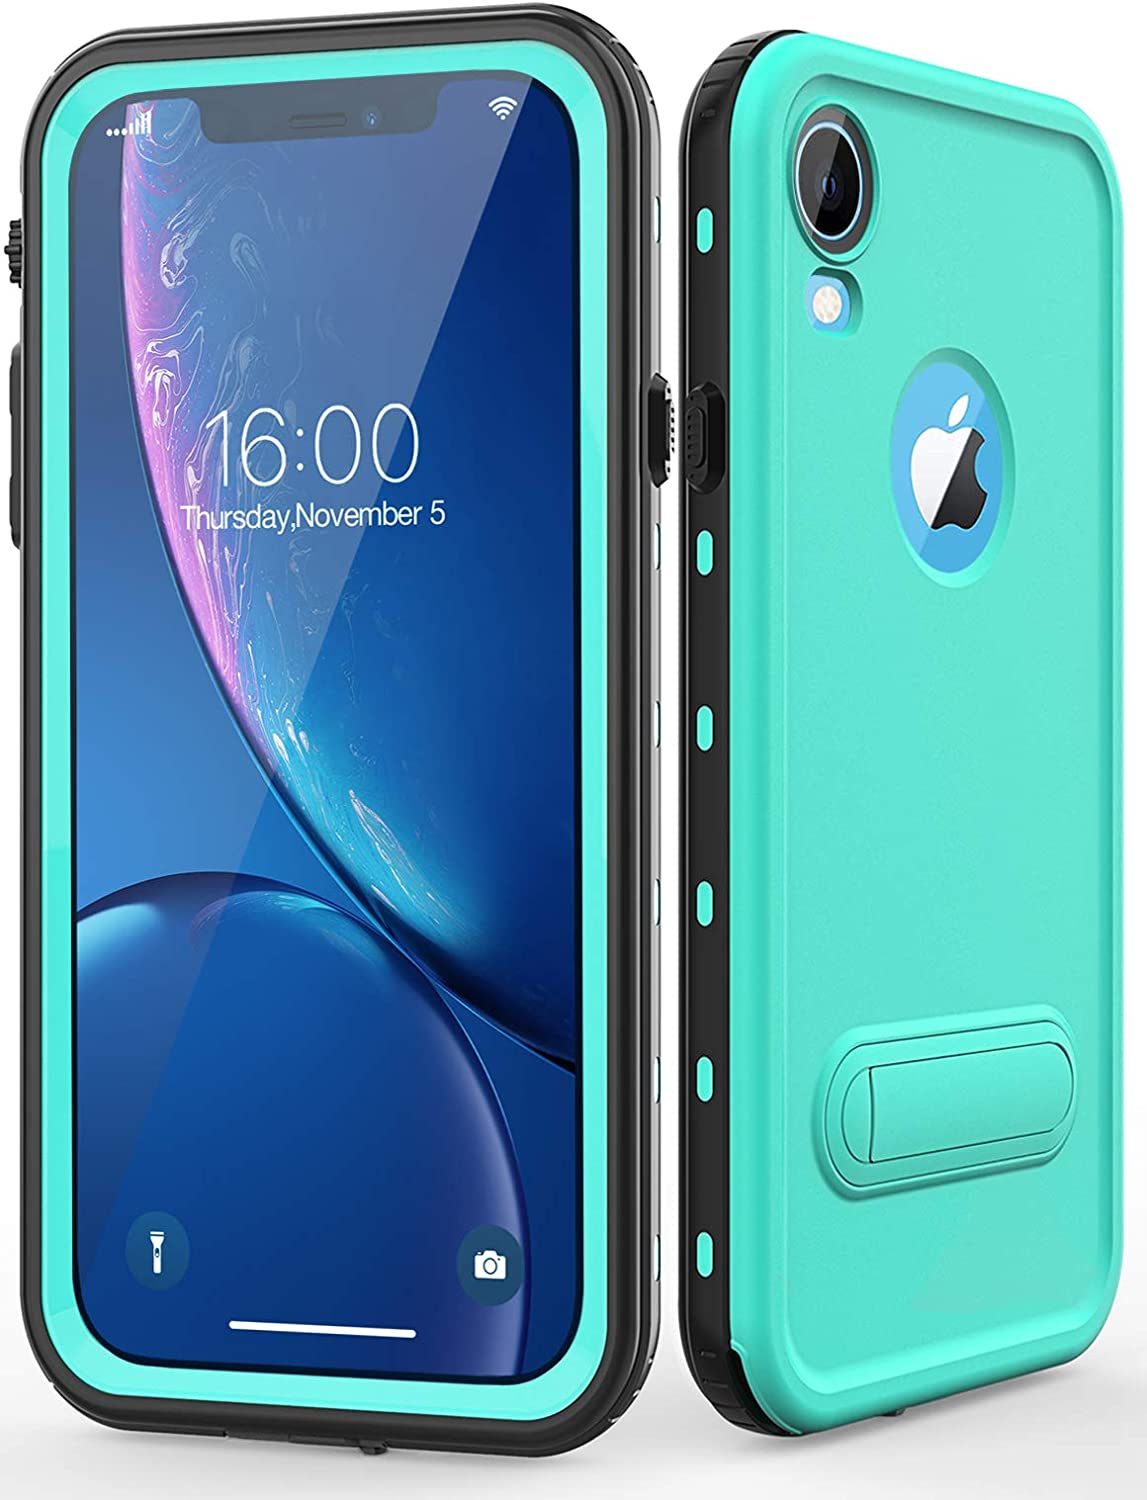 Diverbox for iPhone Xr Case Waterproof,Shockproof Dustproof IP68 Full-Body Sturdy with Kickstand Case Built-in Screen Protector,Underwater Full Sealed Cover Protective for iPhone Xr (Teal)